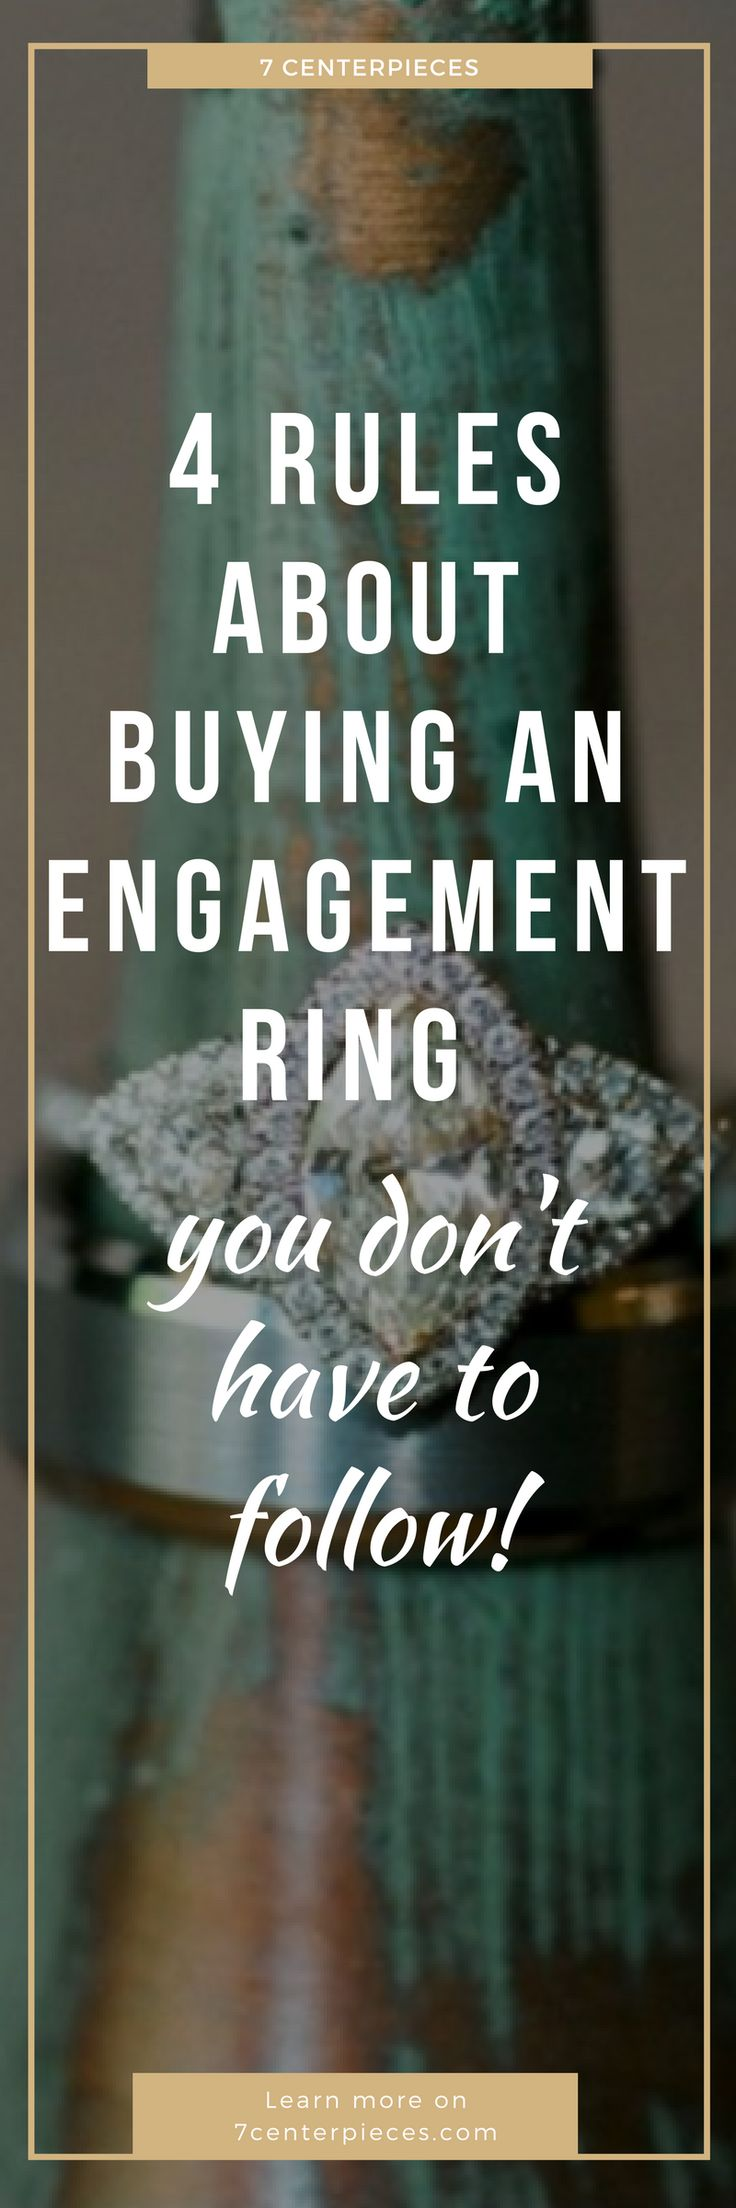 Rules about engagement rings got you stumped? Well throw out all the traditional rules and take back your enagement ring shopping experience! Check out this article for tips on what NOT to do! #engagementring